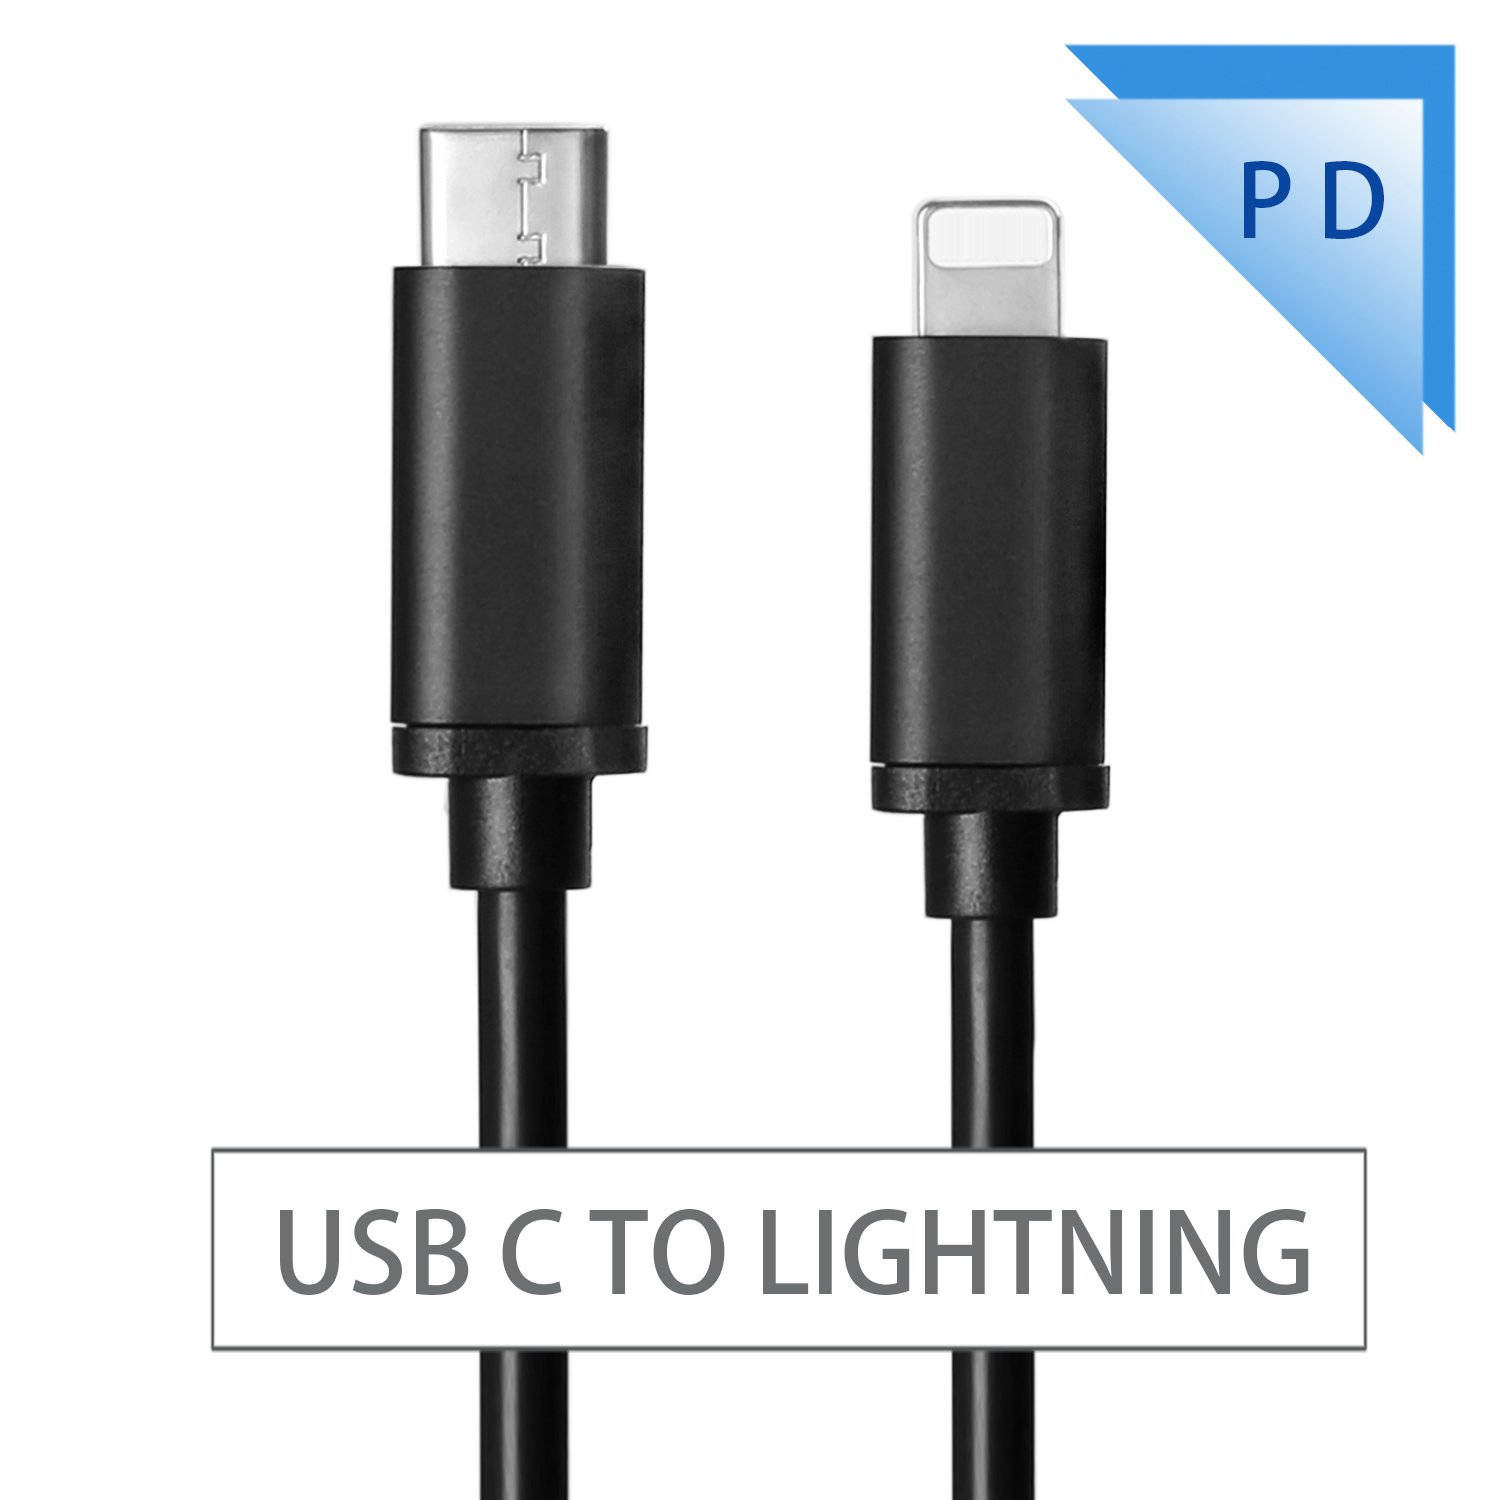 3.3FT USB C to Lightning Cable Fast Charging Sync & Data Cable Power Delivery PD for iPhone X/ 8/8 Plus iPad Connect to MacBook/Pro & Other 2.0 USB C Devices(USB C to Lightning Cable Black)